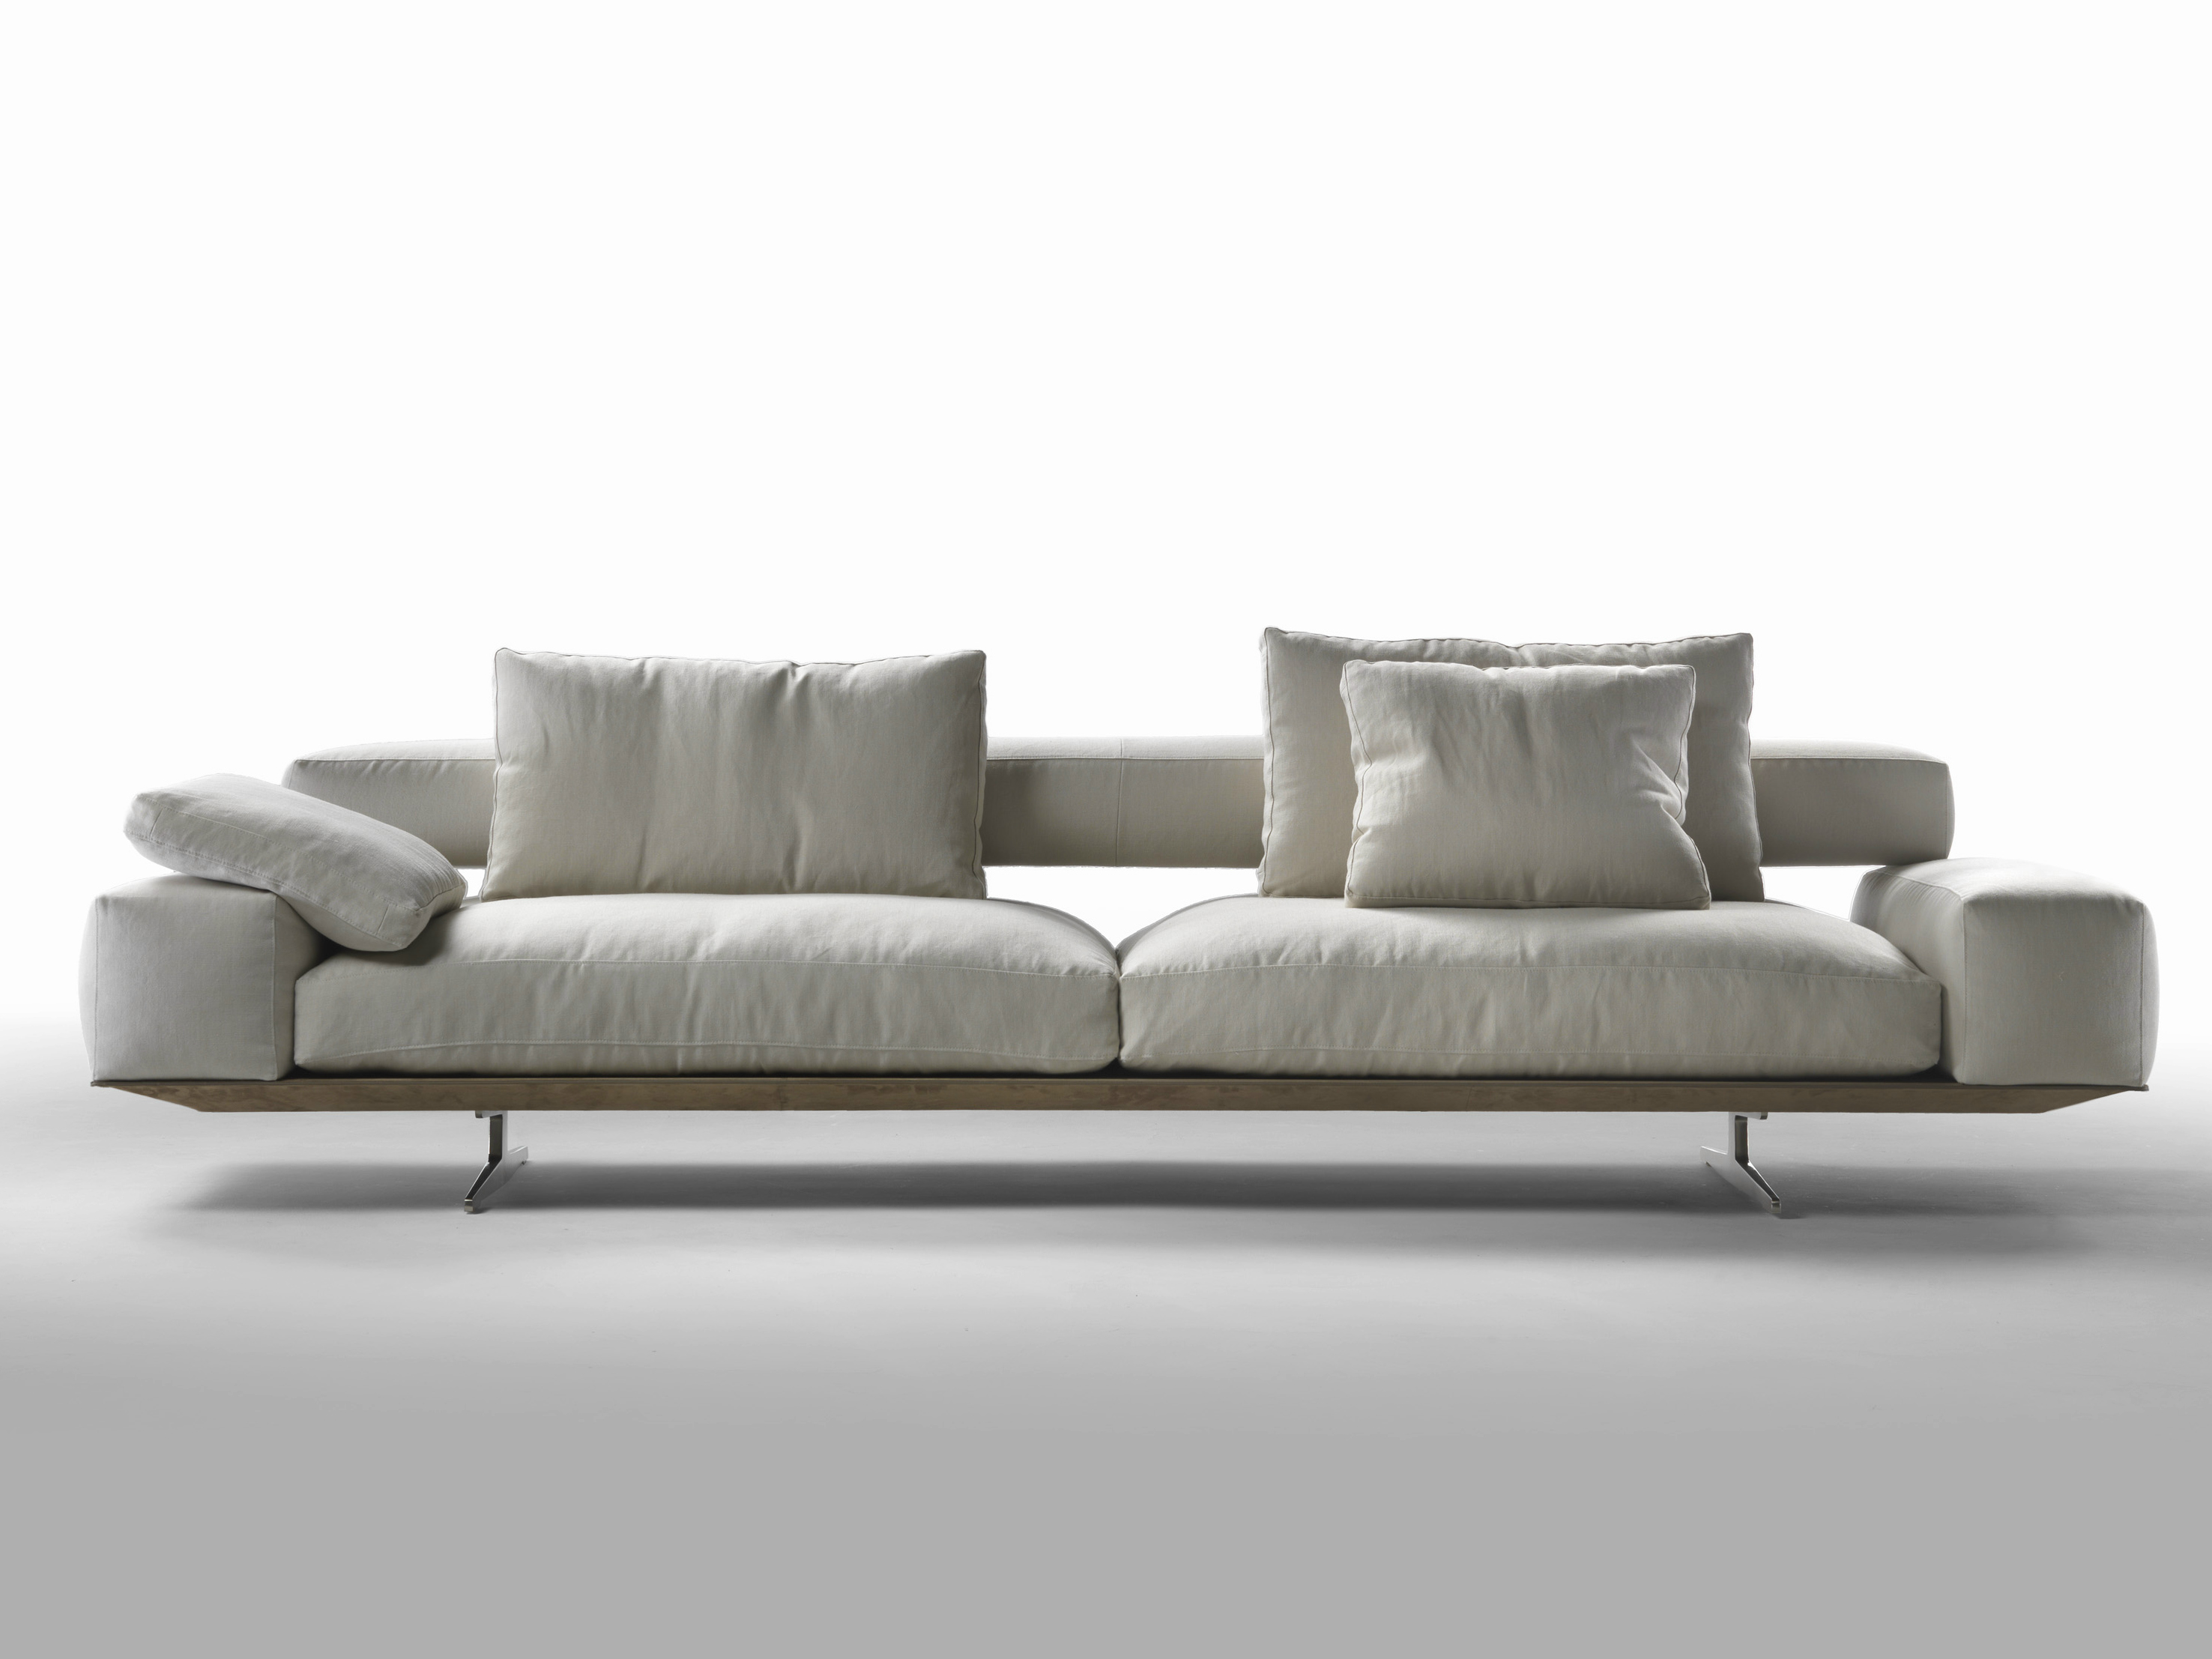 Flexform Sectional Sofa Images Rooms Dream